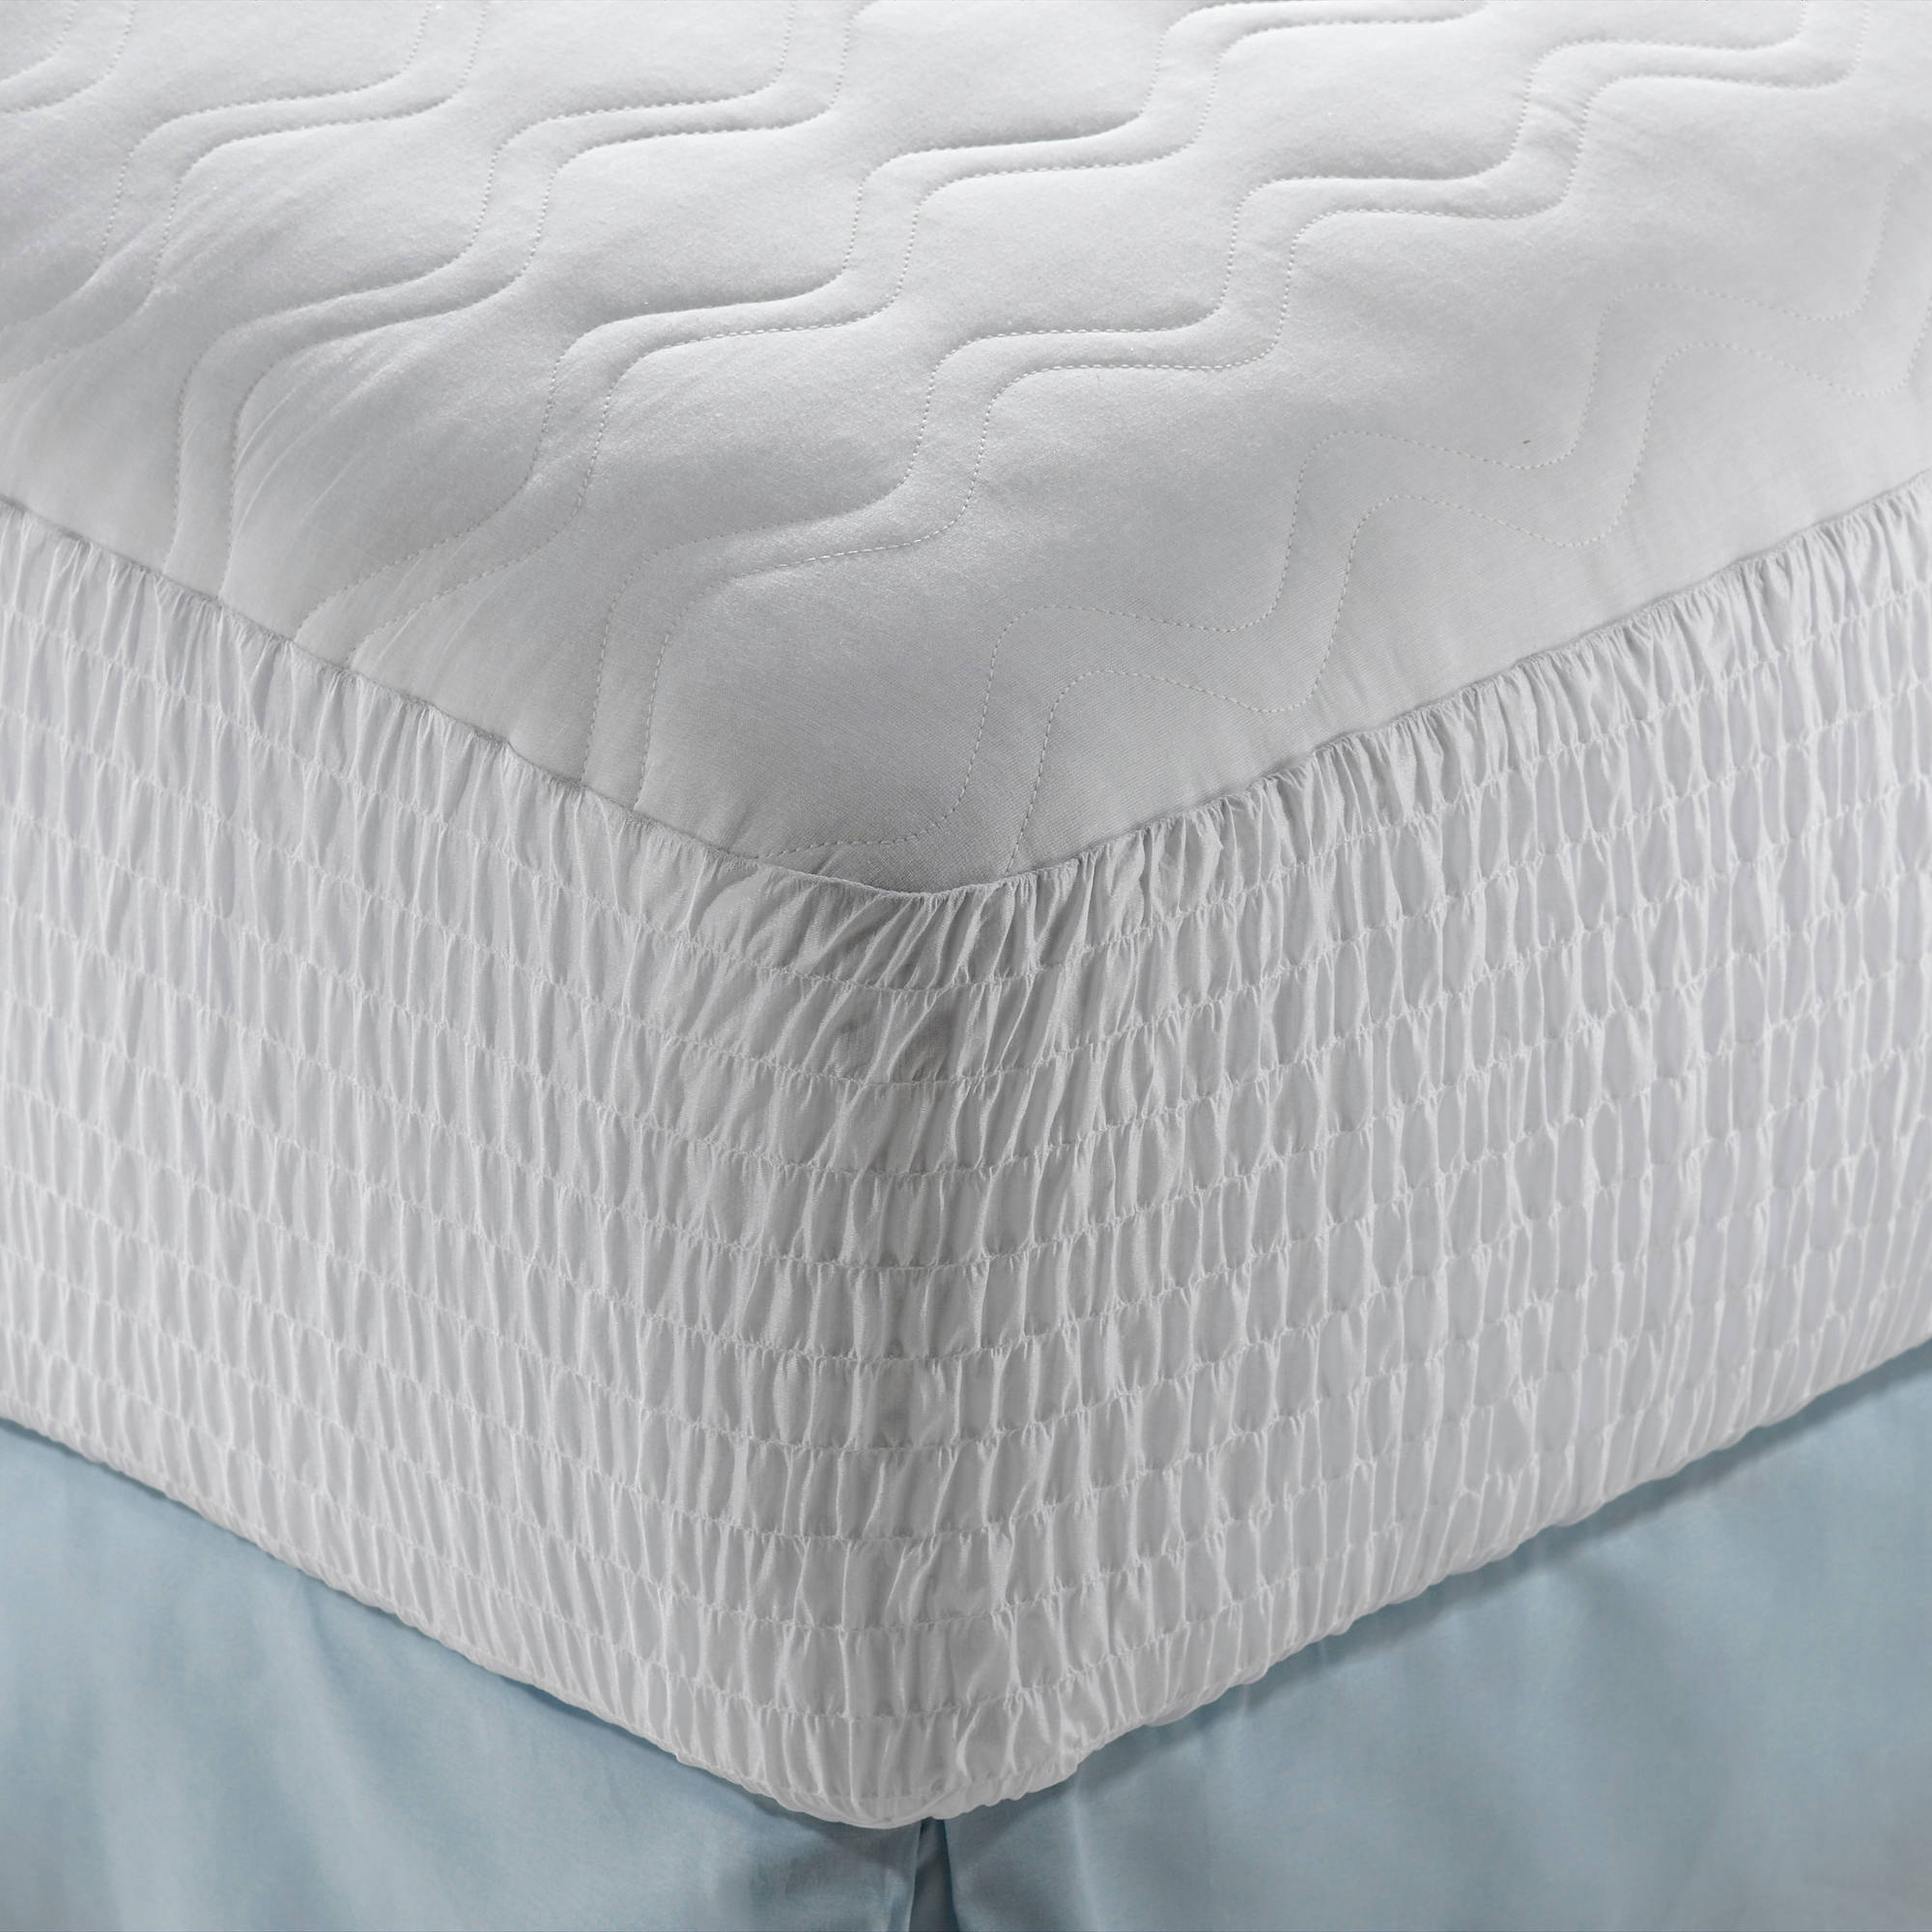 DeepSleep 100% Cotton Mattress Pad Walmart